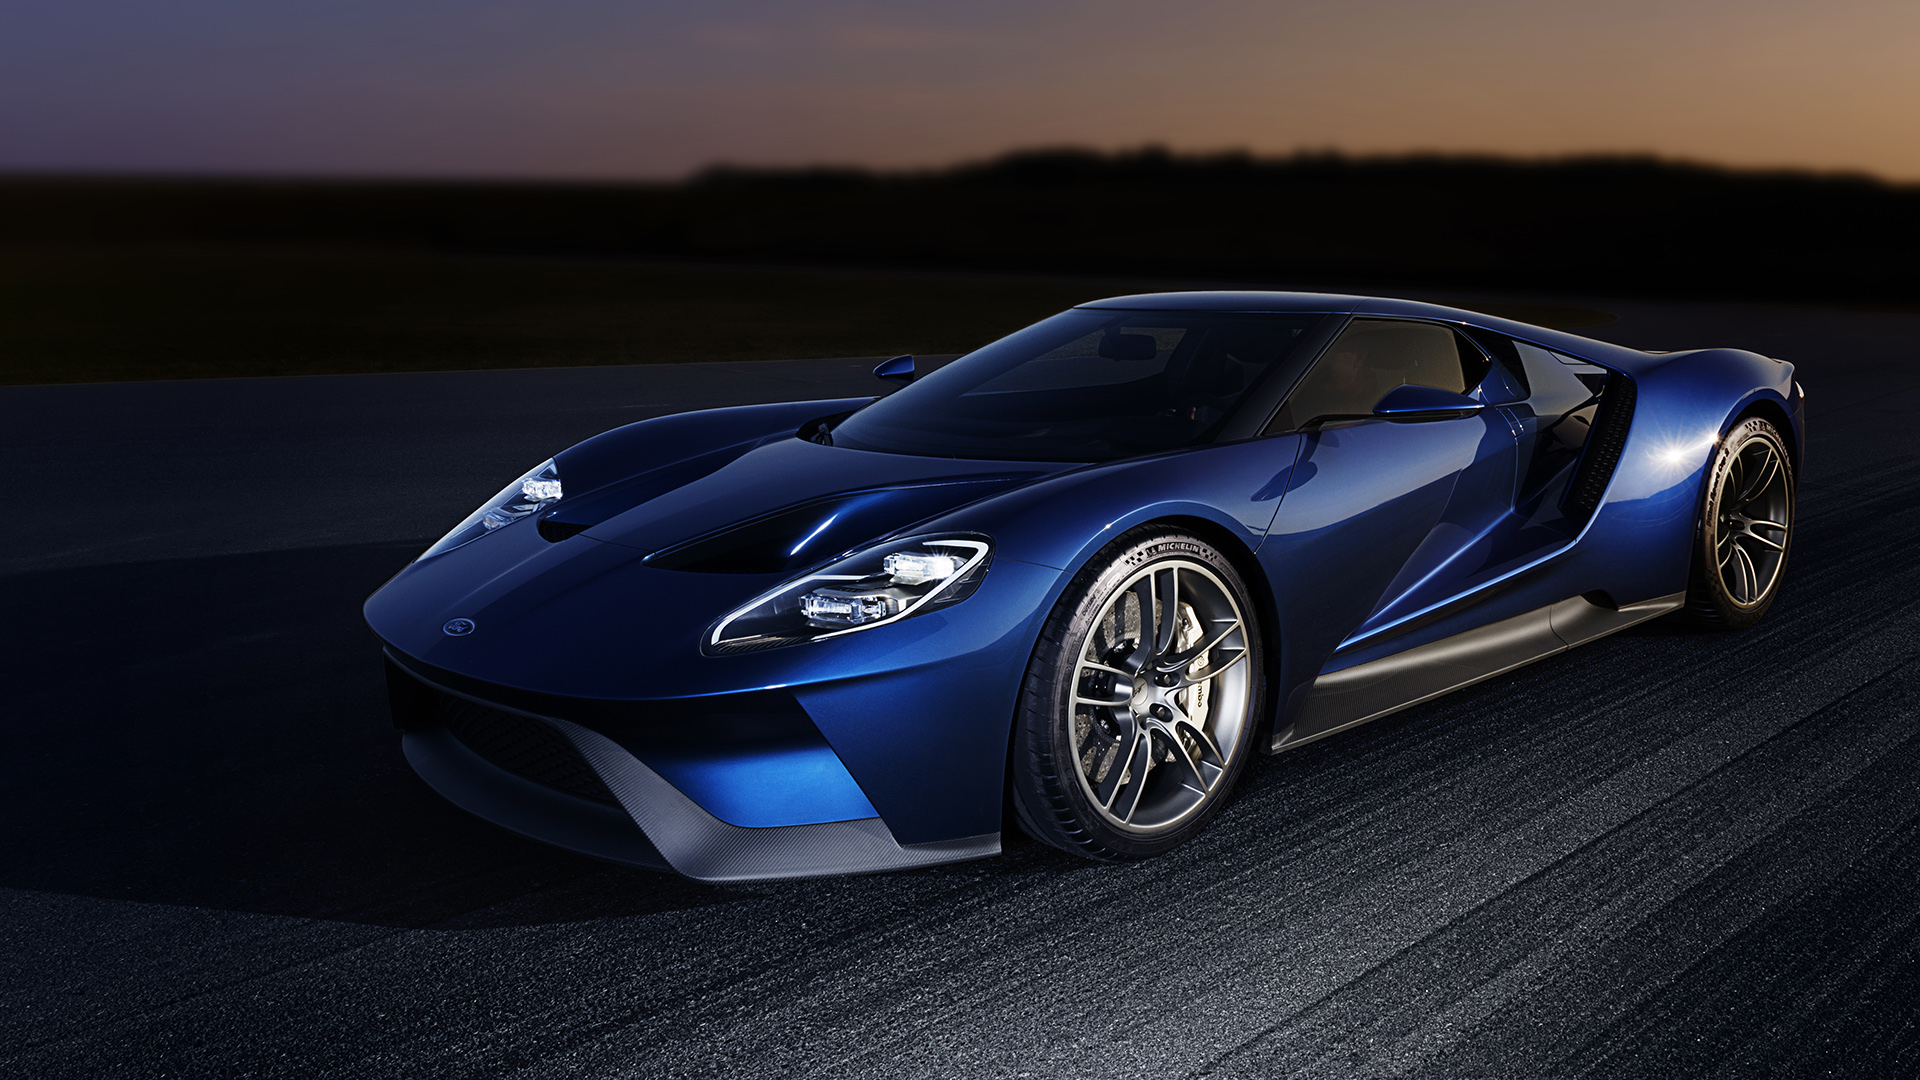 ford gt wallpapers hd | wallpaper.wiki - part 2